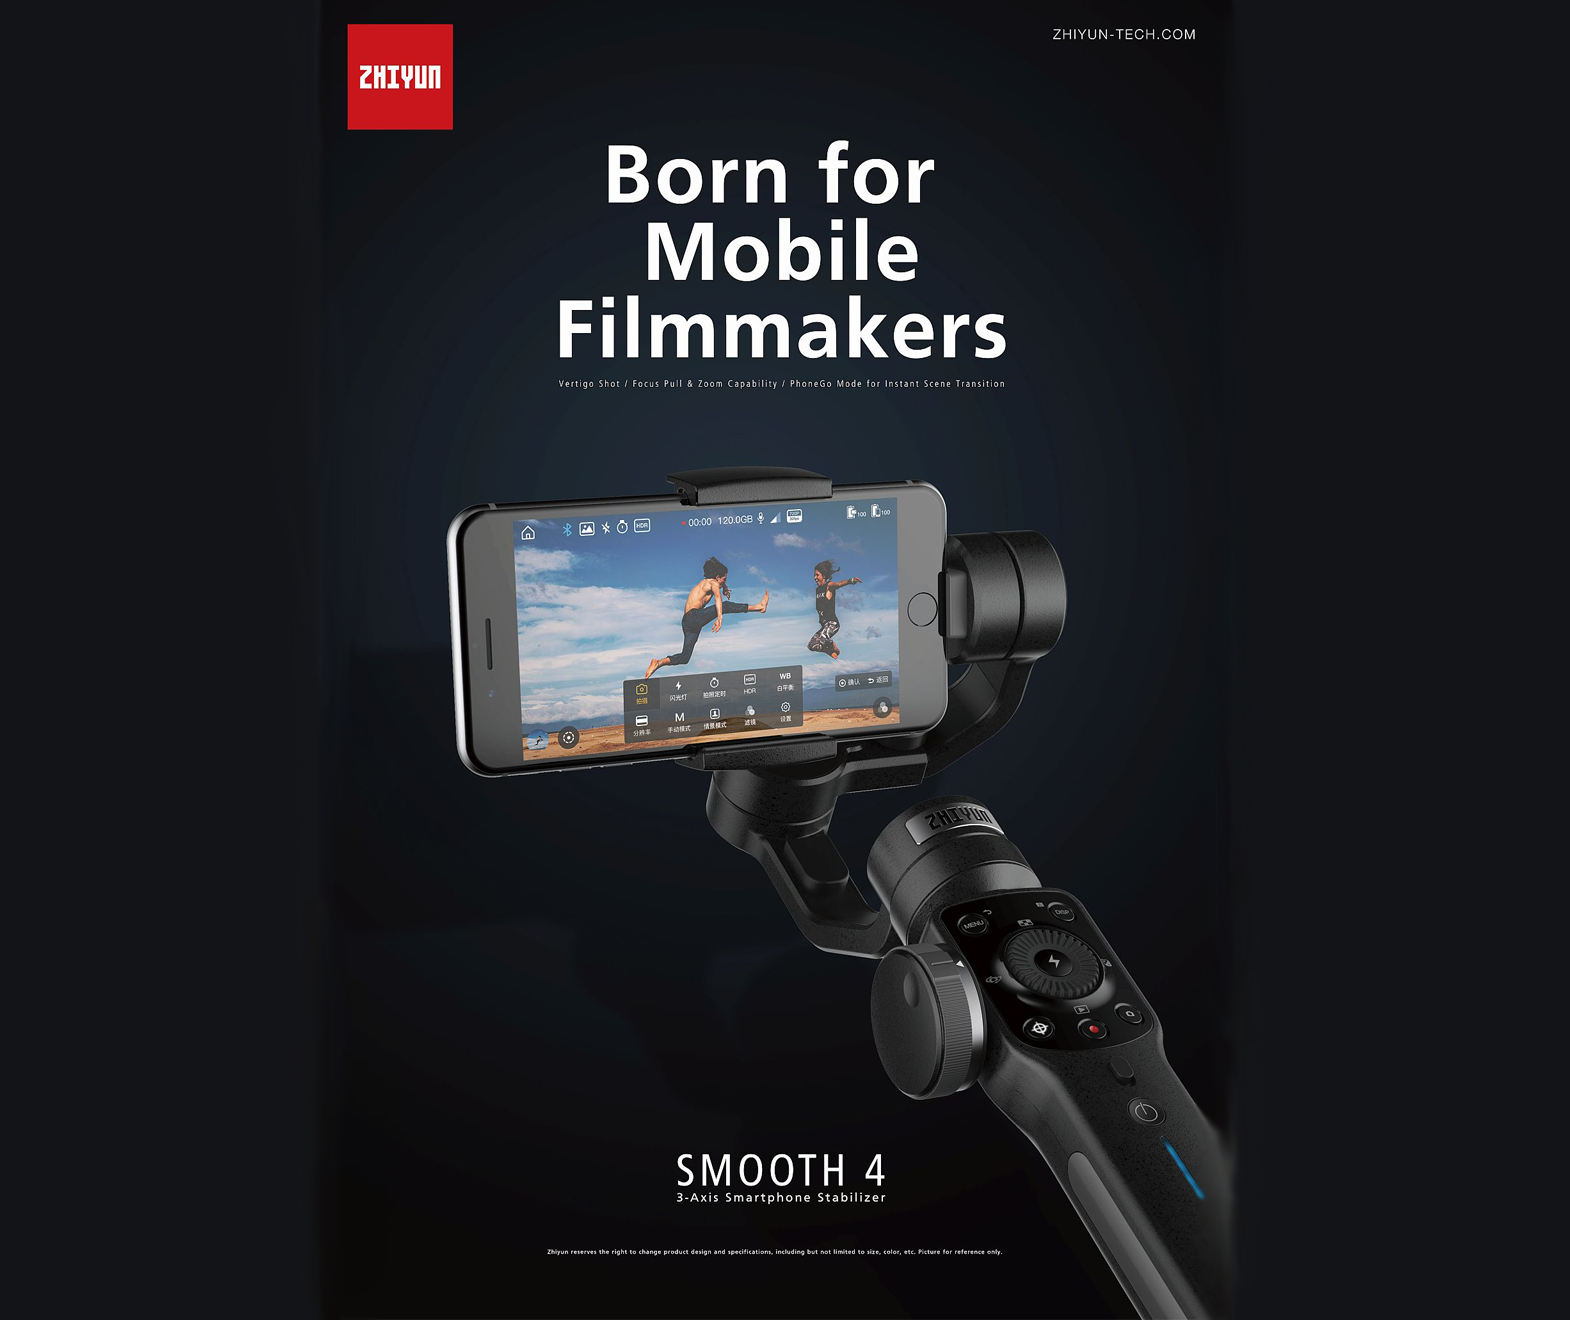 Zhiyun-Tech SMOOTH 4 Smartphone Filmmaker Gimbal with Follow Focus